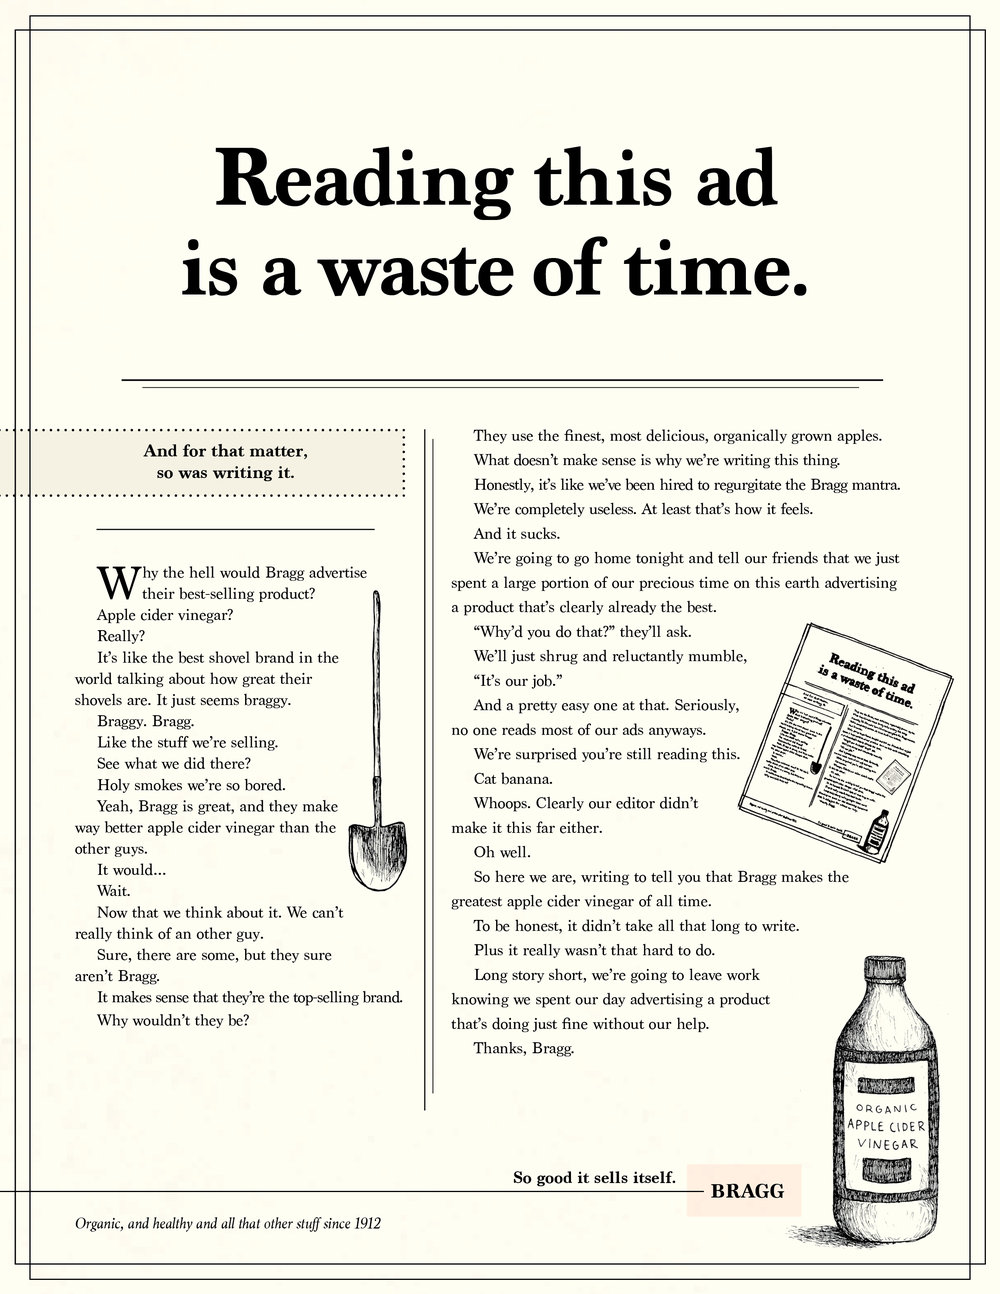 Bragg's Long Copy Ads1.jpg